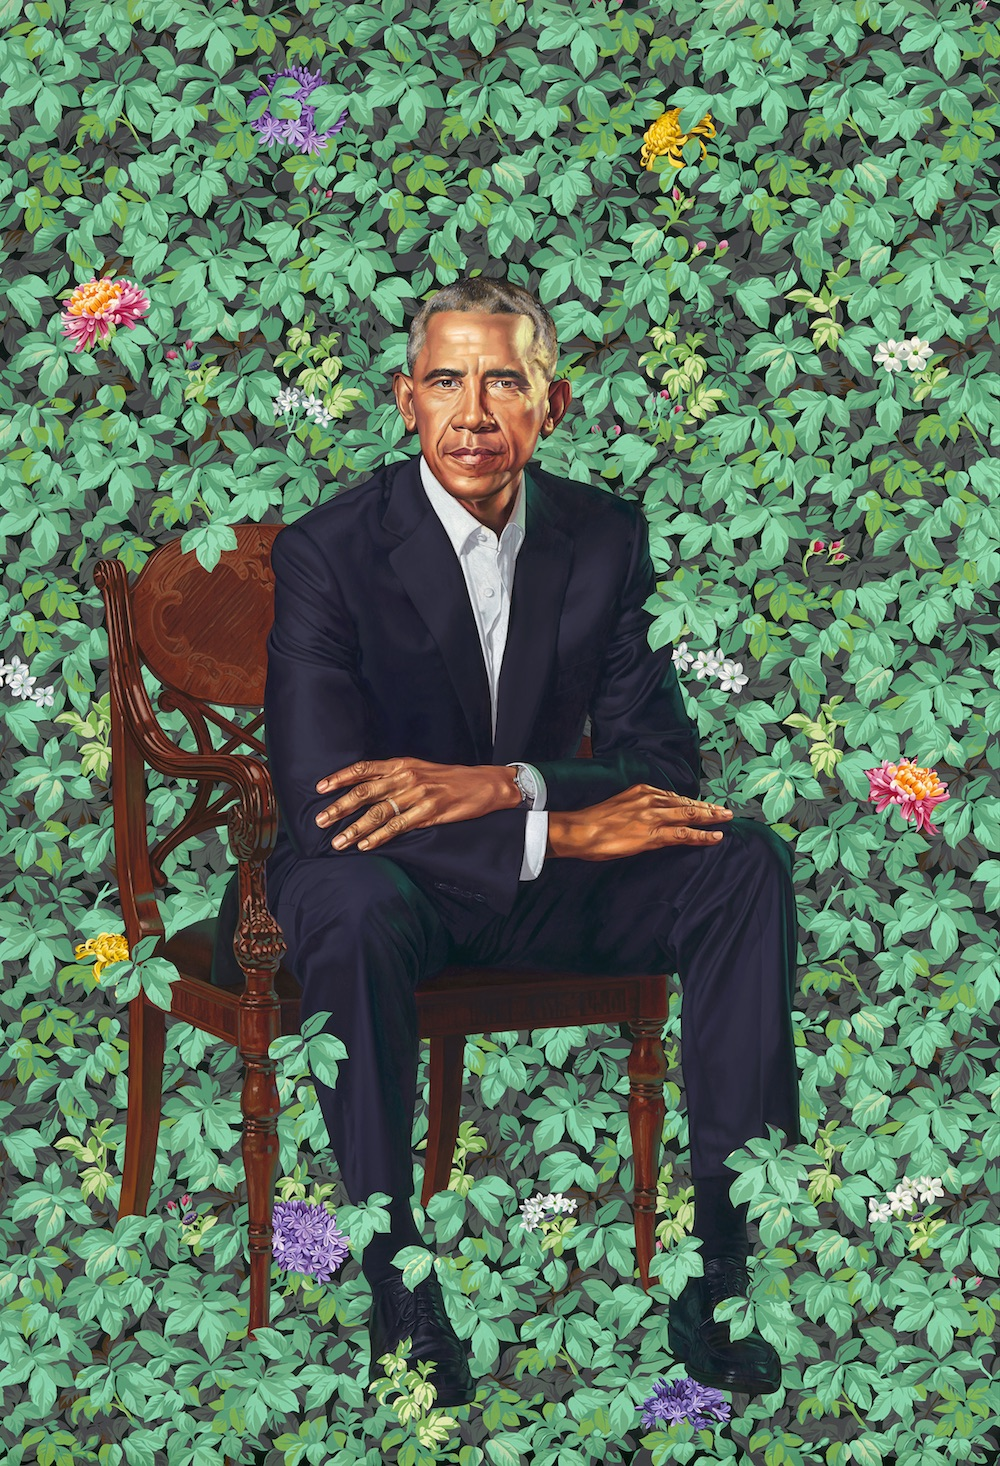 Barack Obama by Kehinde Wiley, oil on canvas, 2018. National Portrait Gallery, Smithsonian Institution. The National Portrait Gallery is grateful to the following lead donors for their support of the Obama portraits: Kate Capshaw and Steven Spielberg; Judith Kern and Kent Whealy; Tommie L. Pegues and Donald A. Capoccia.© 2018 Kehinde Wiley